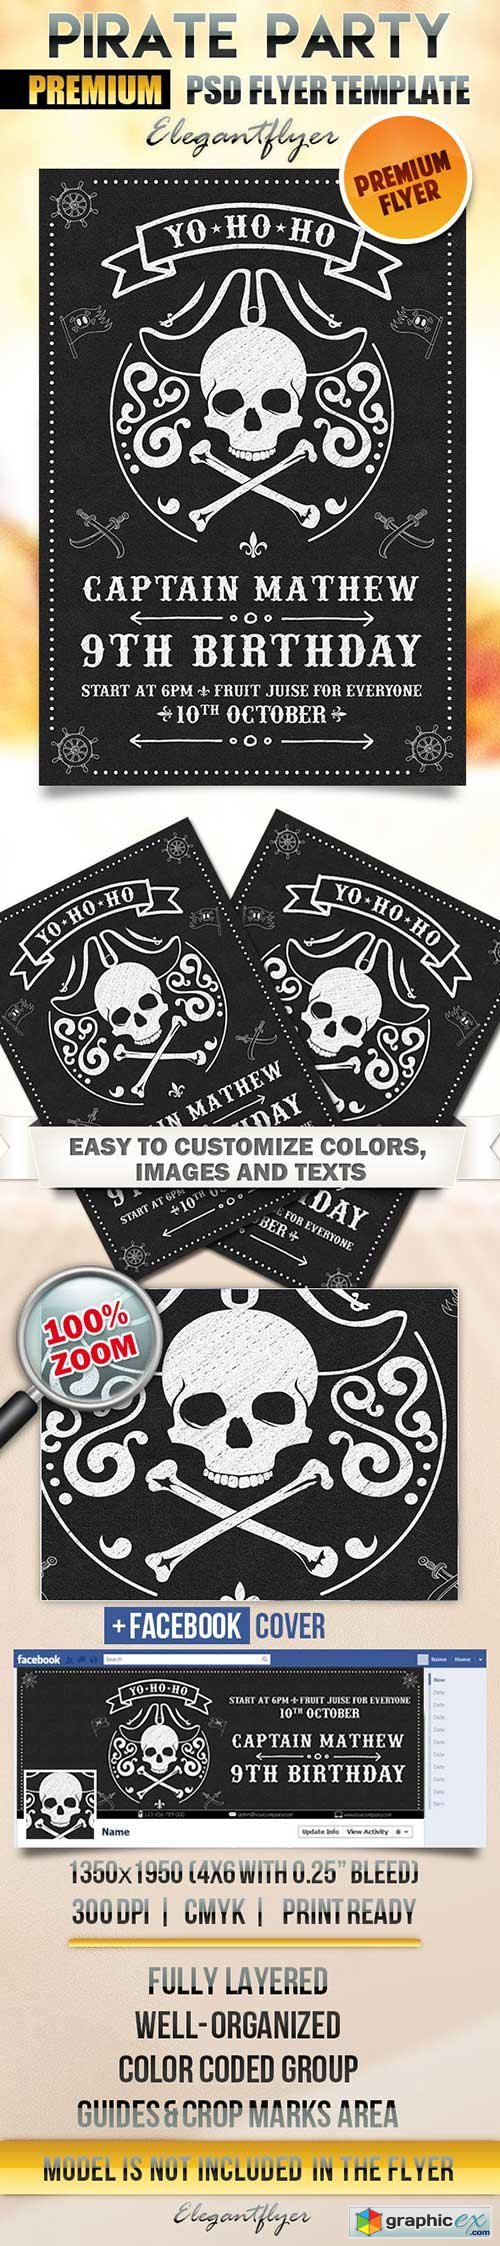 Pirate Party Flyer PSD Template + Facebook Cover